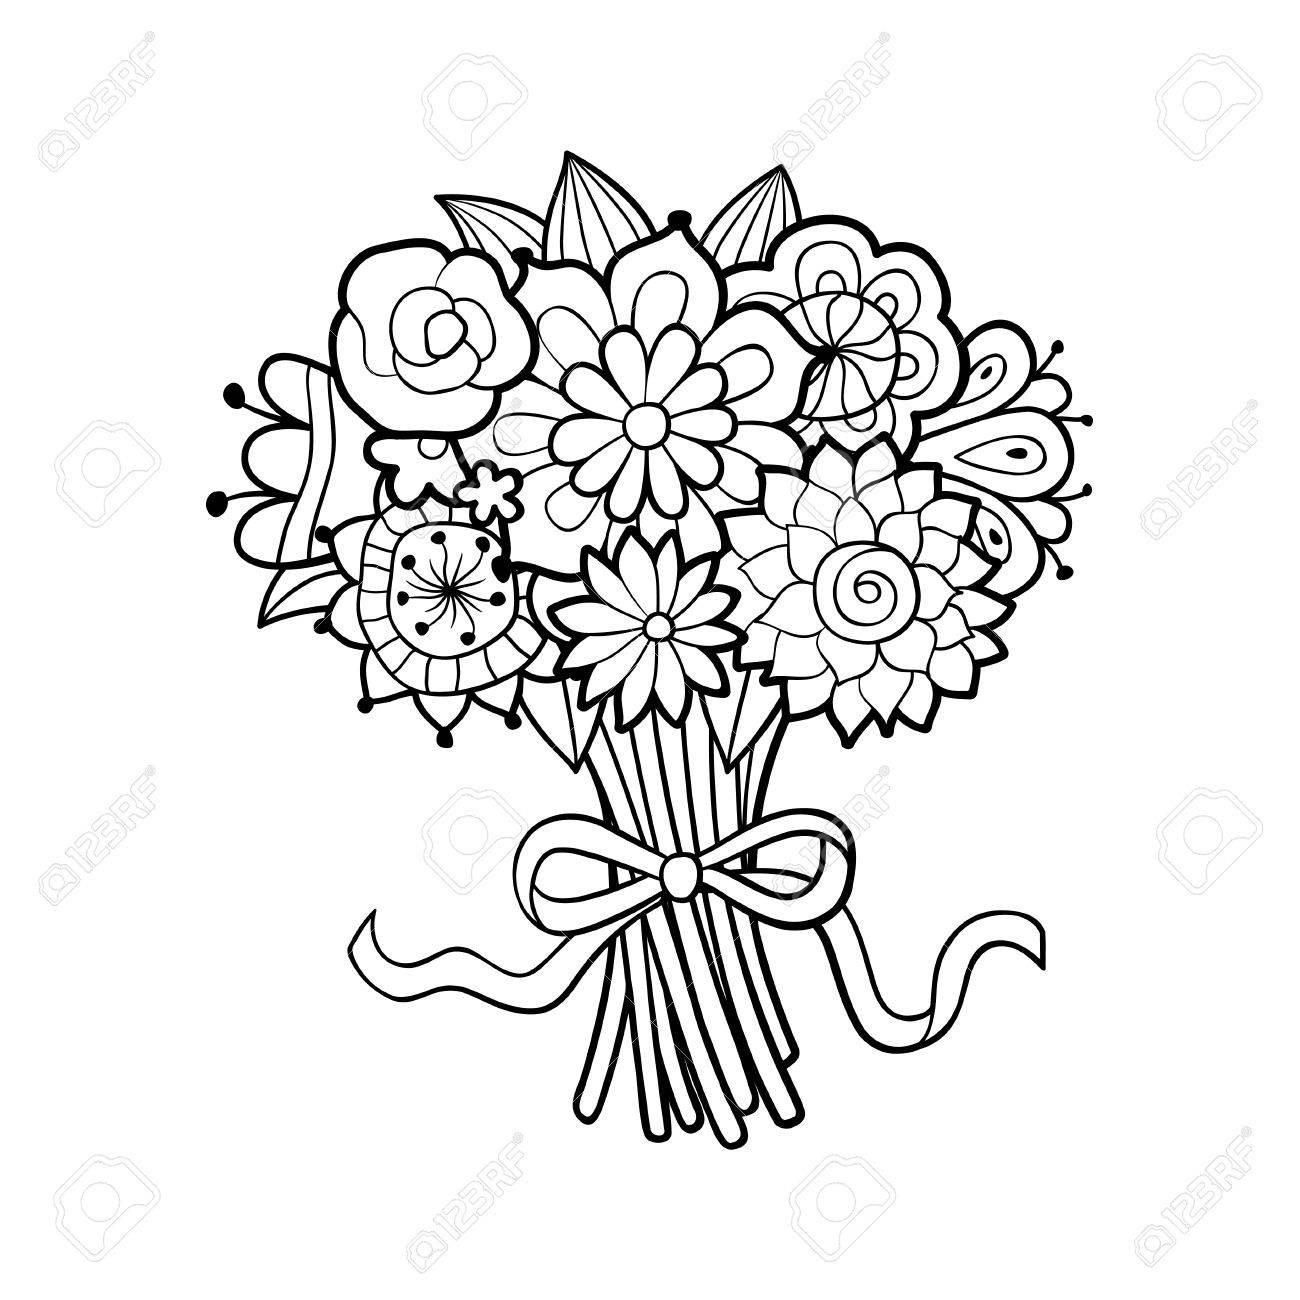 Black And White Flower Bouquet Clipart.